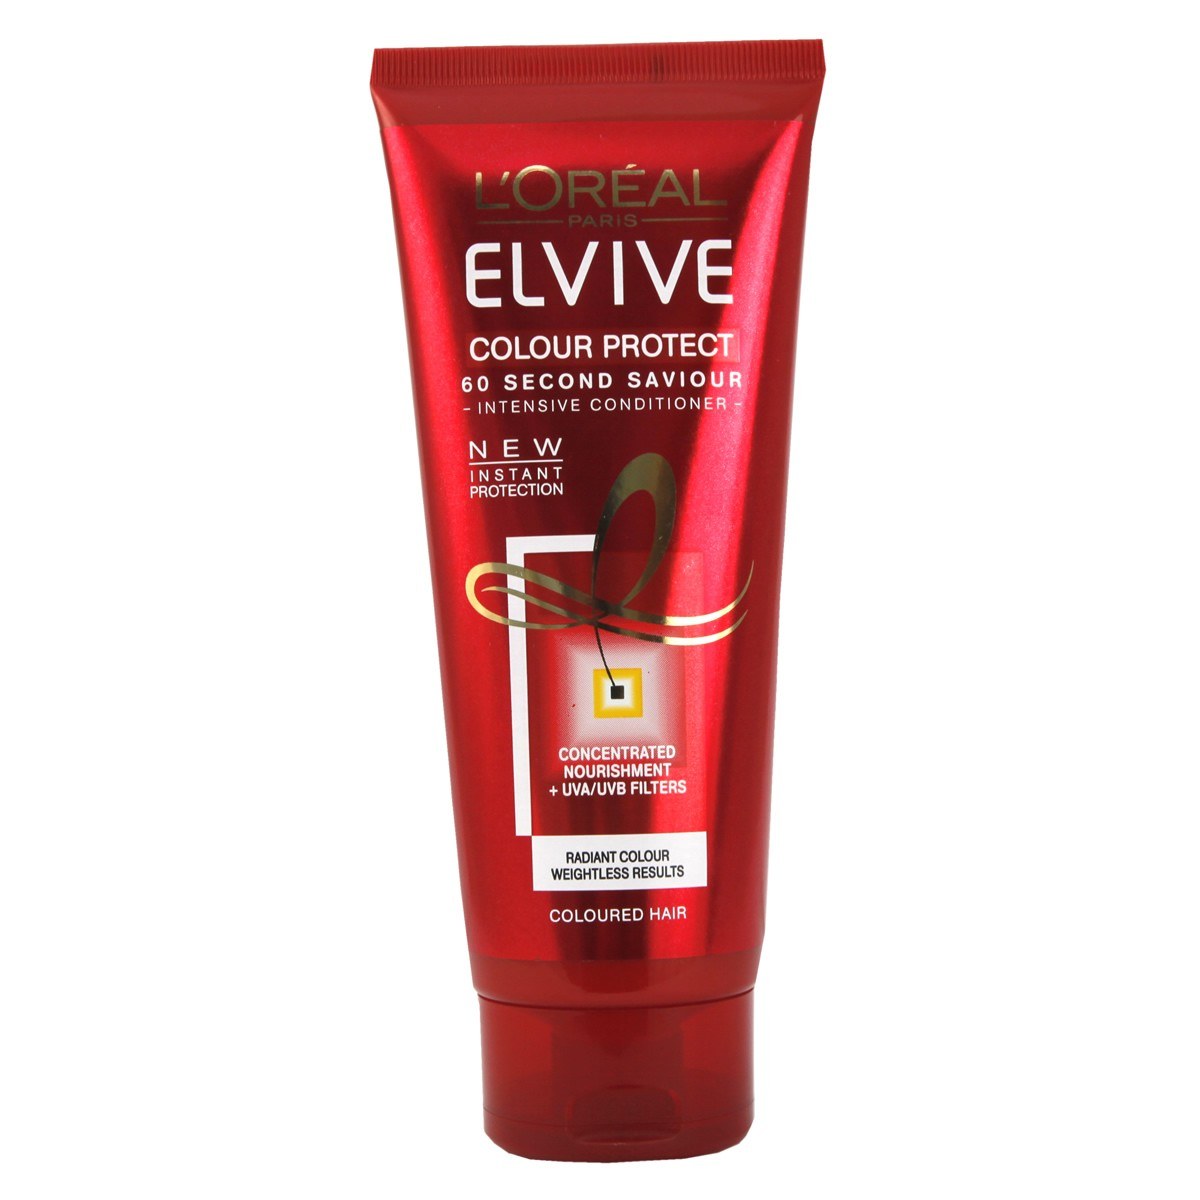 L'Oreal Paris Elvive Colour Protect 60 Second Saviour Intensive Conditioner